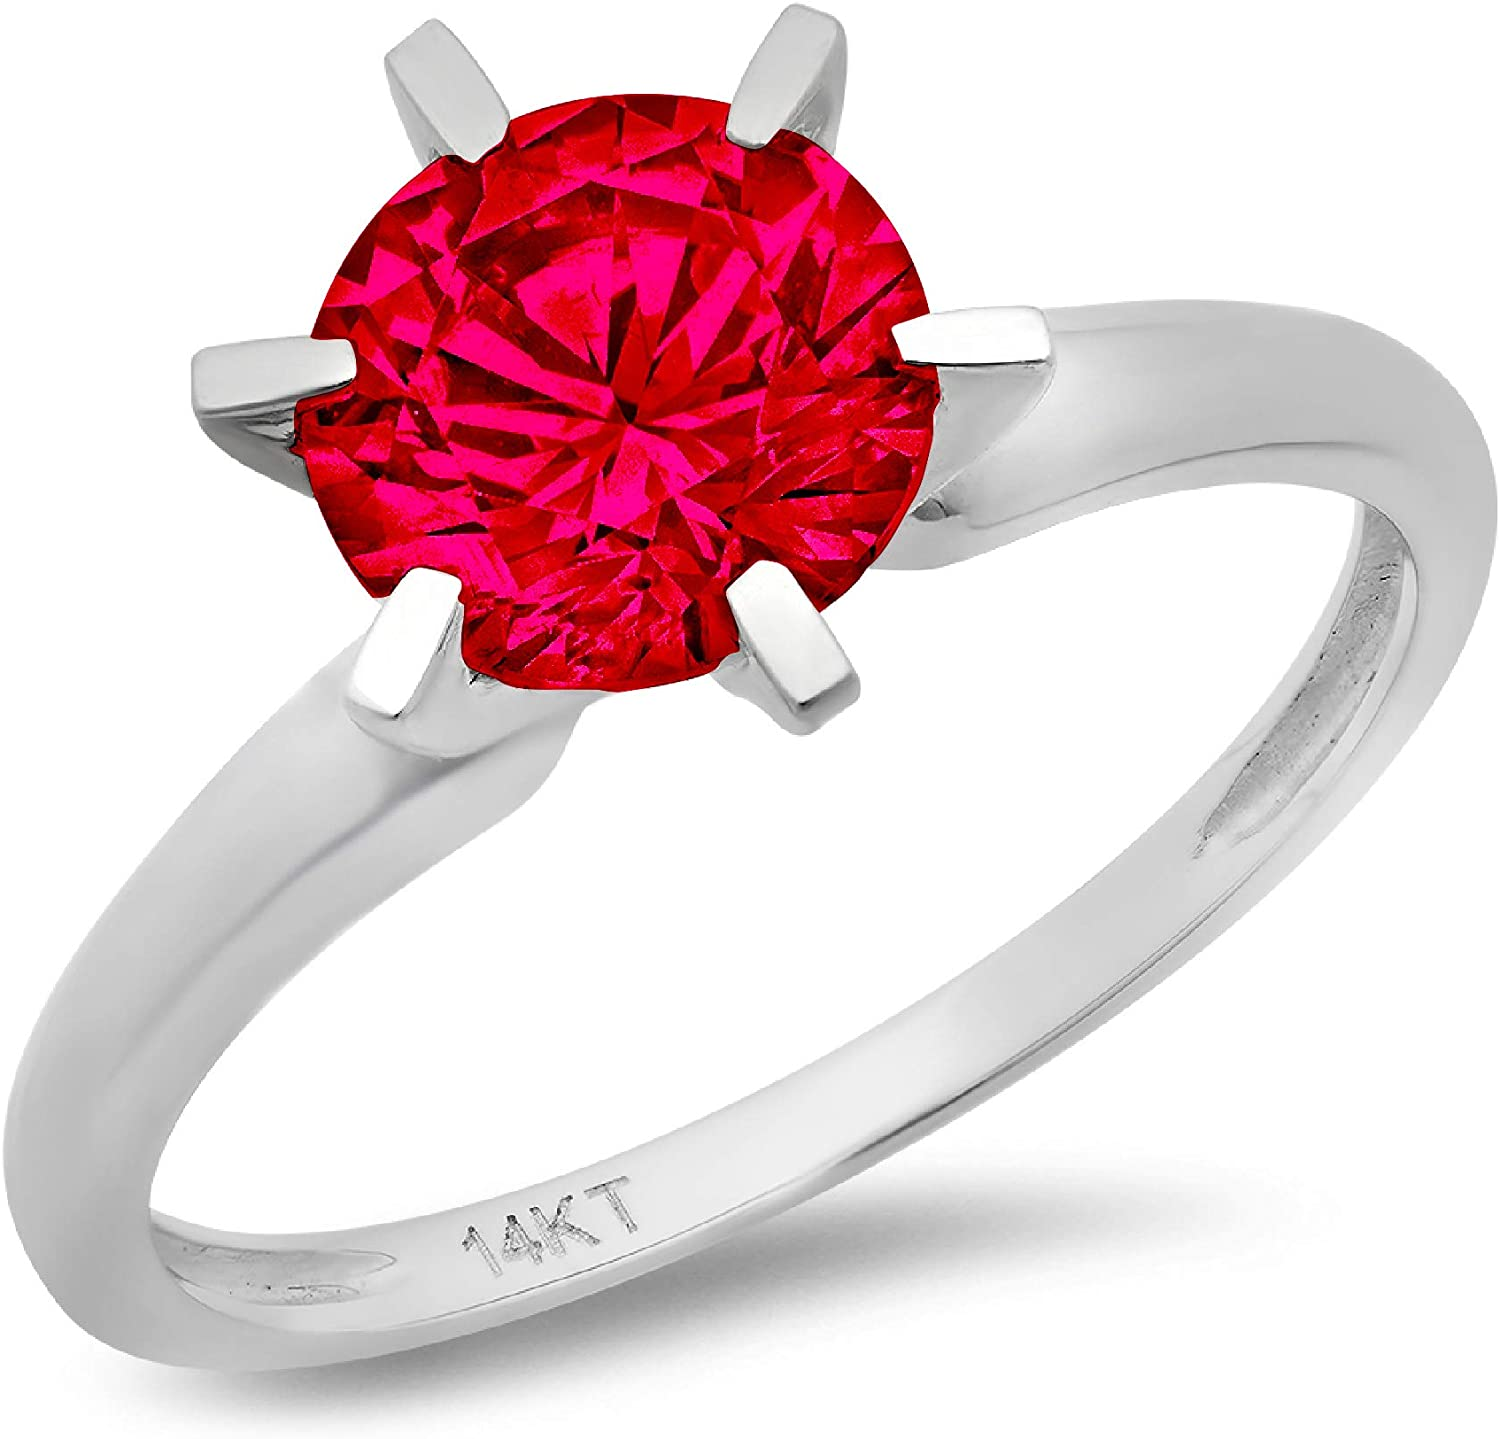 0.4ct Brilliant Round Cut Solitaire Flawless Simulated Cubic Zirconia Red Ruby Ideal VVS1 6-Prong Engagement Wedding Bridal Promise Anniversary Designer Ring in Solid 14k white Gold for Women